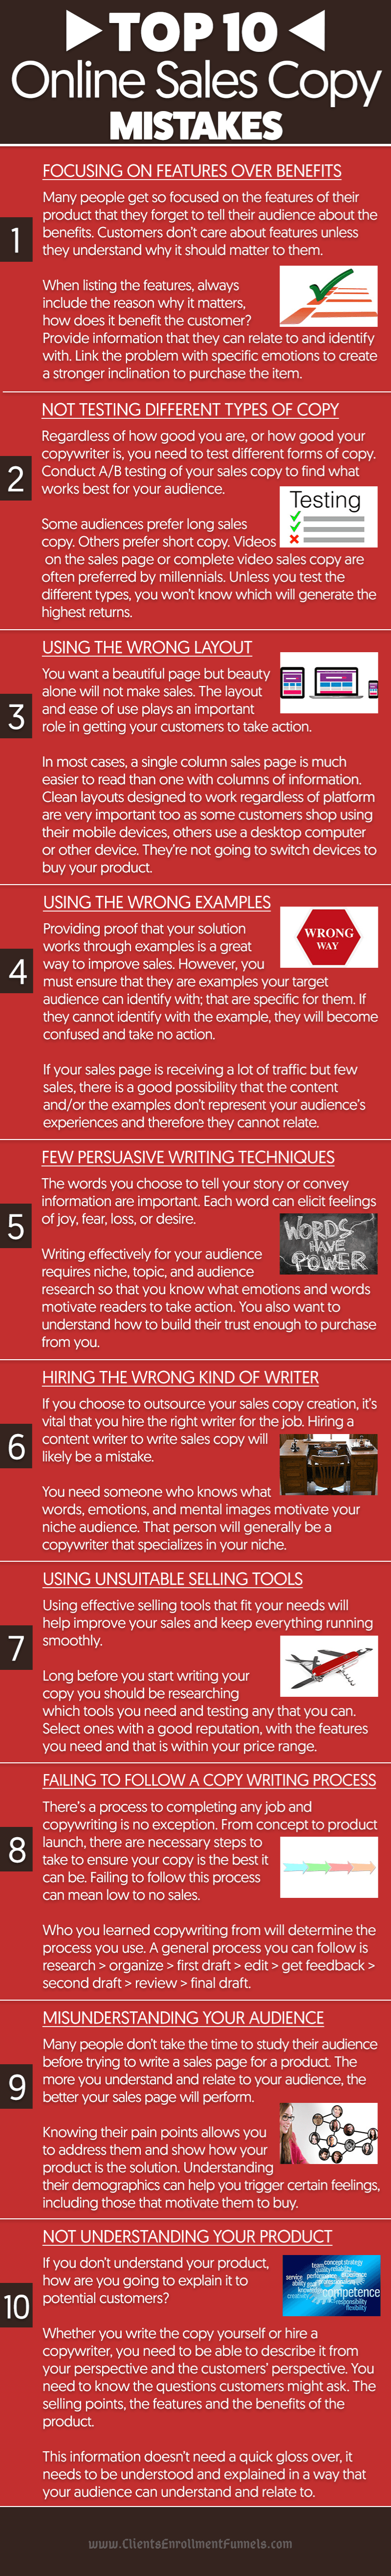 Top 10 Online Sales Copy Mistakes - Infographic